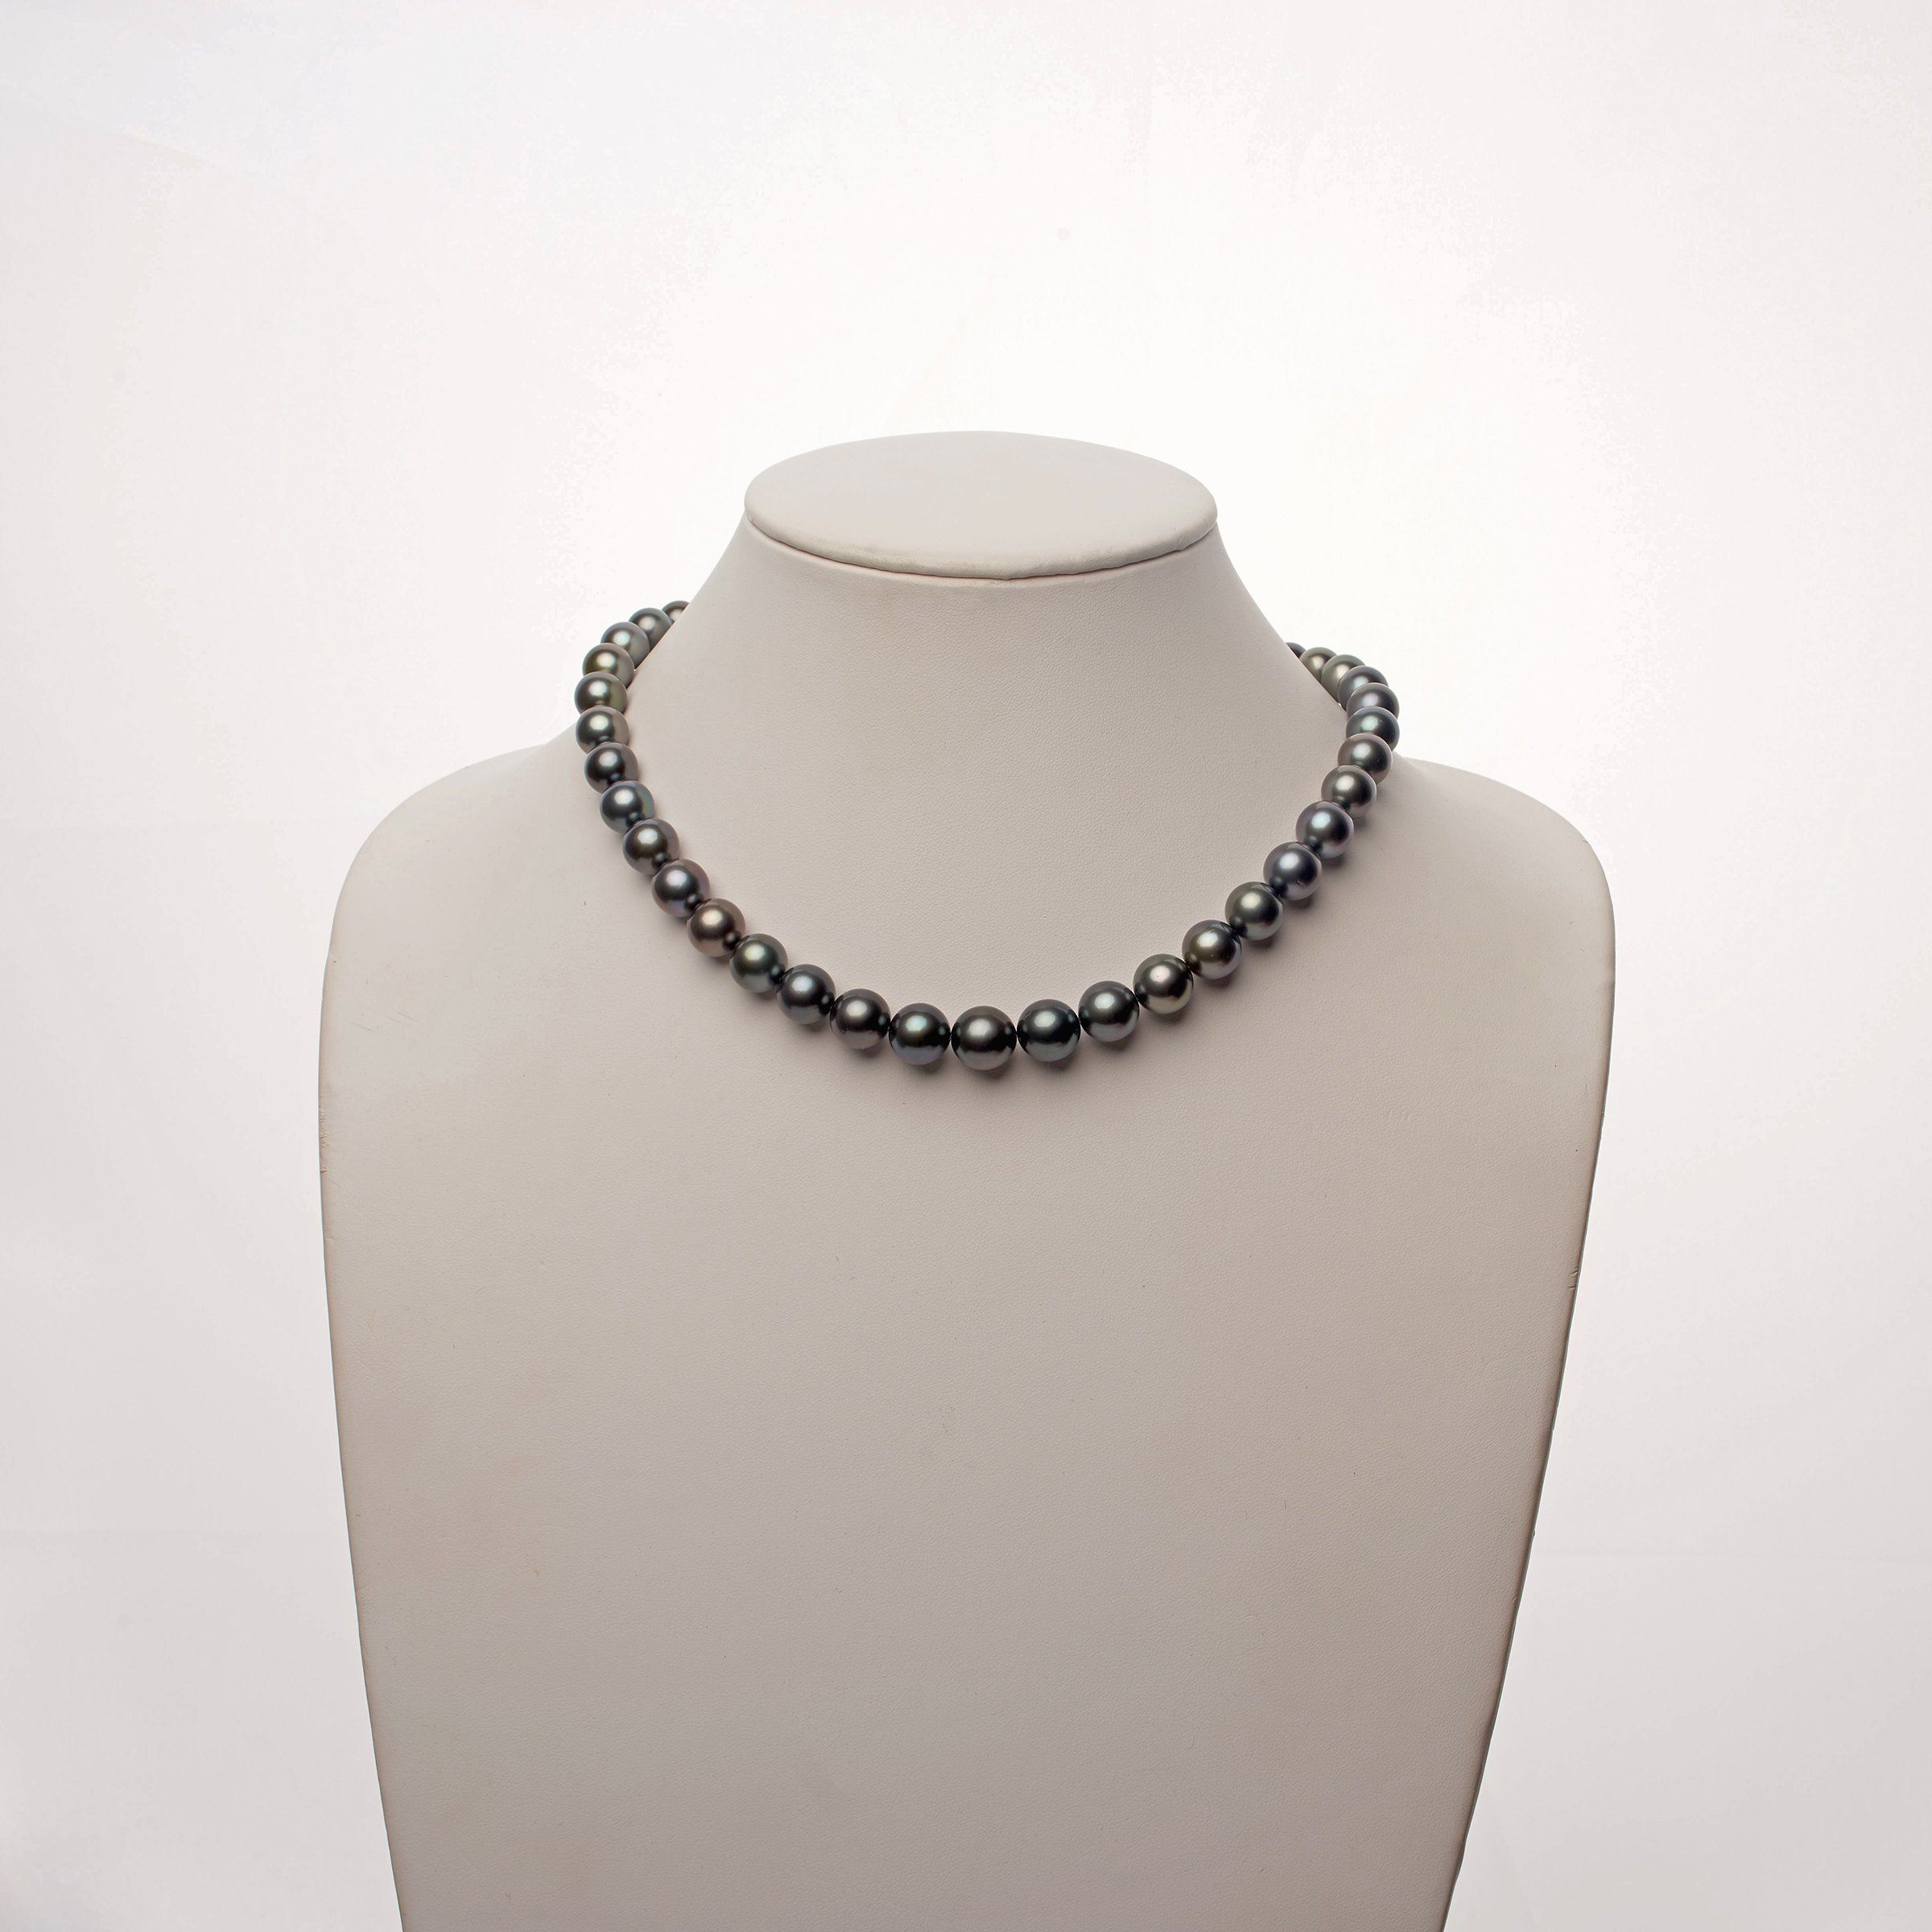 9.0-11.5 mm AA+/AAA Tahitian Round Pearl Necklace